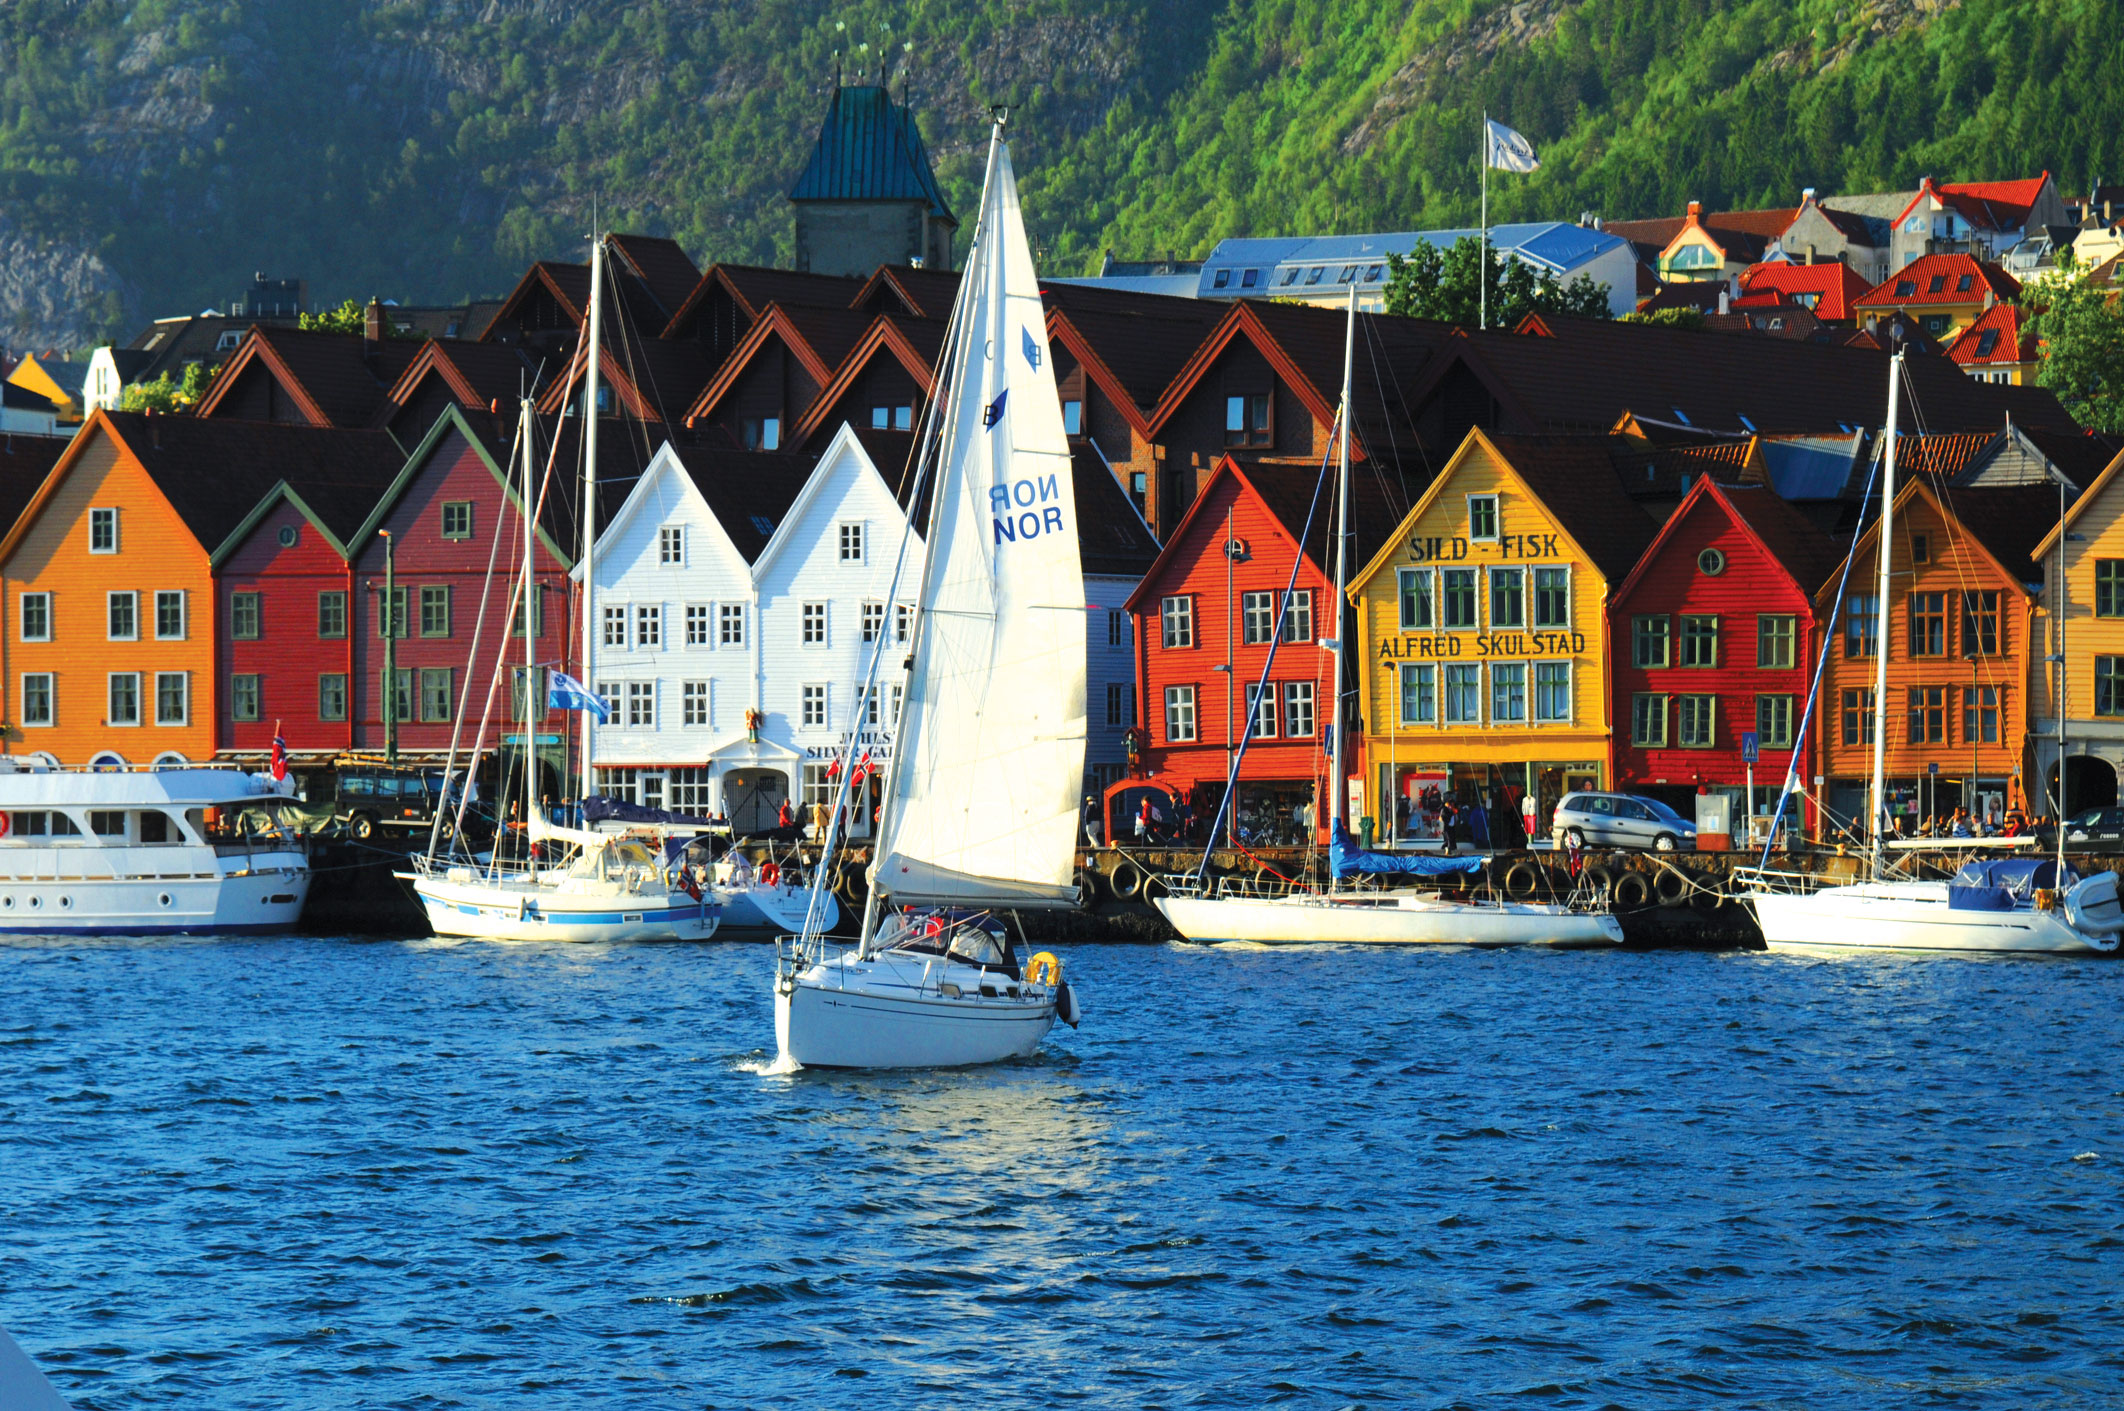 bergen-the-hanseatic_13097